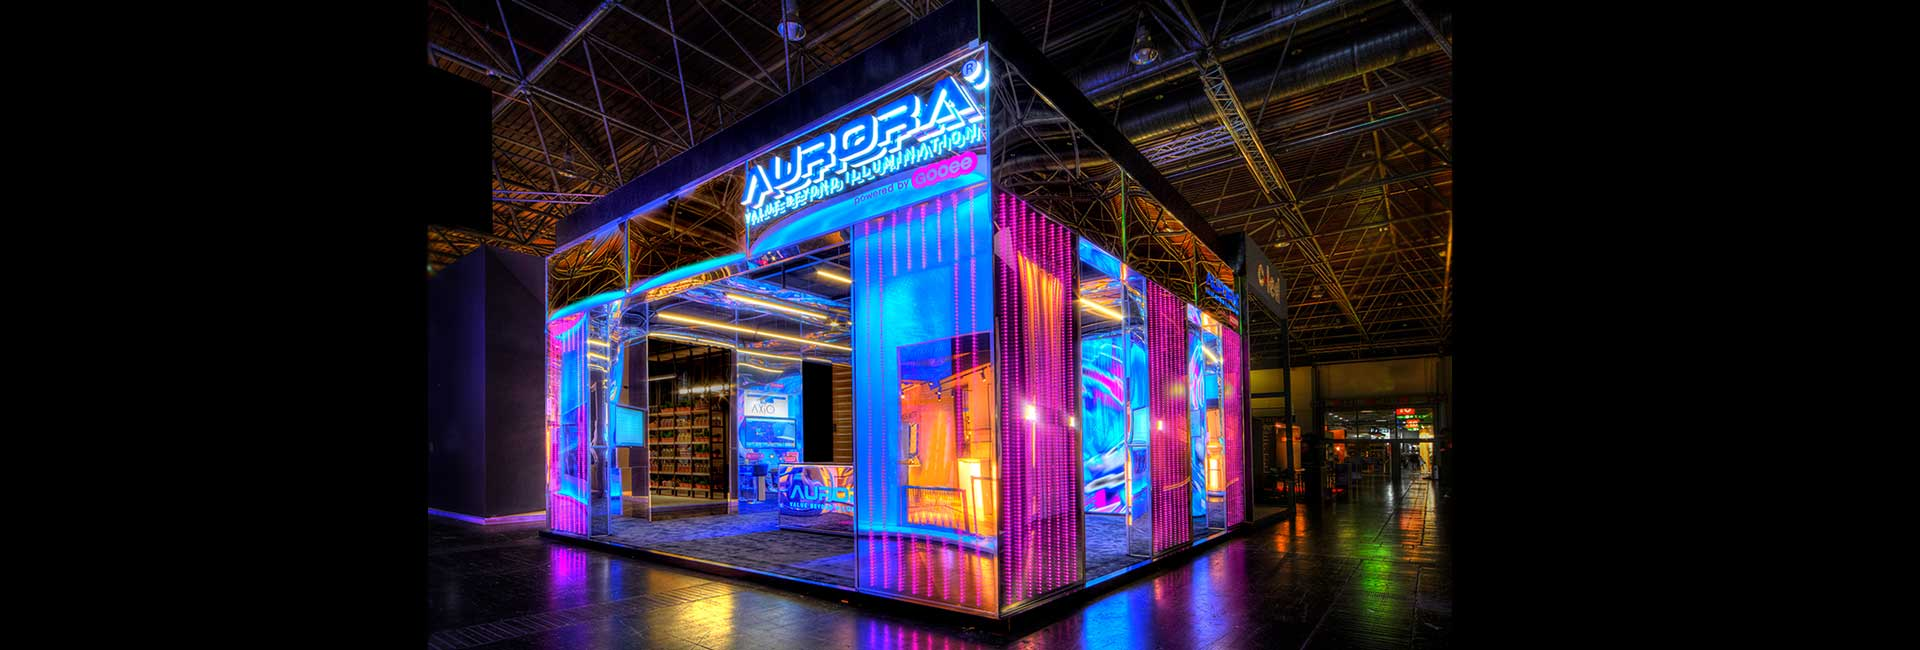 a lighting. show products in category aurora lighting to unveil new smart platform at euroshop a